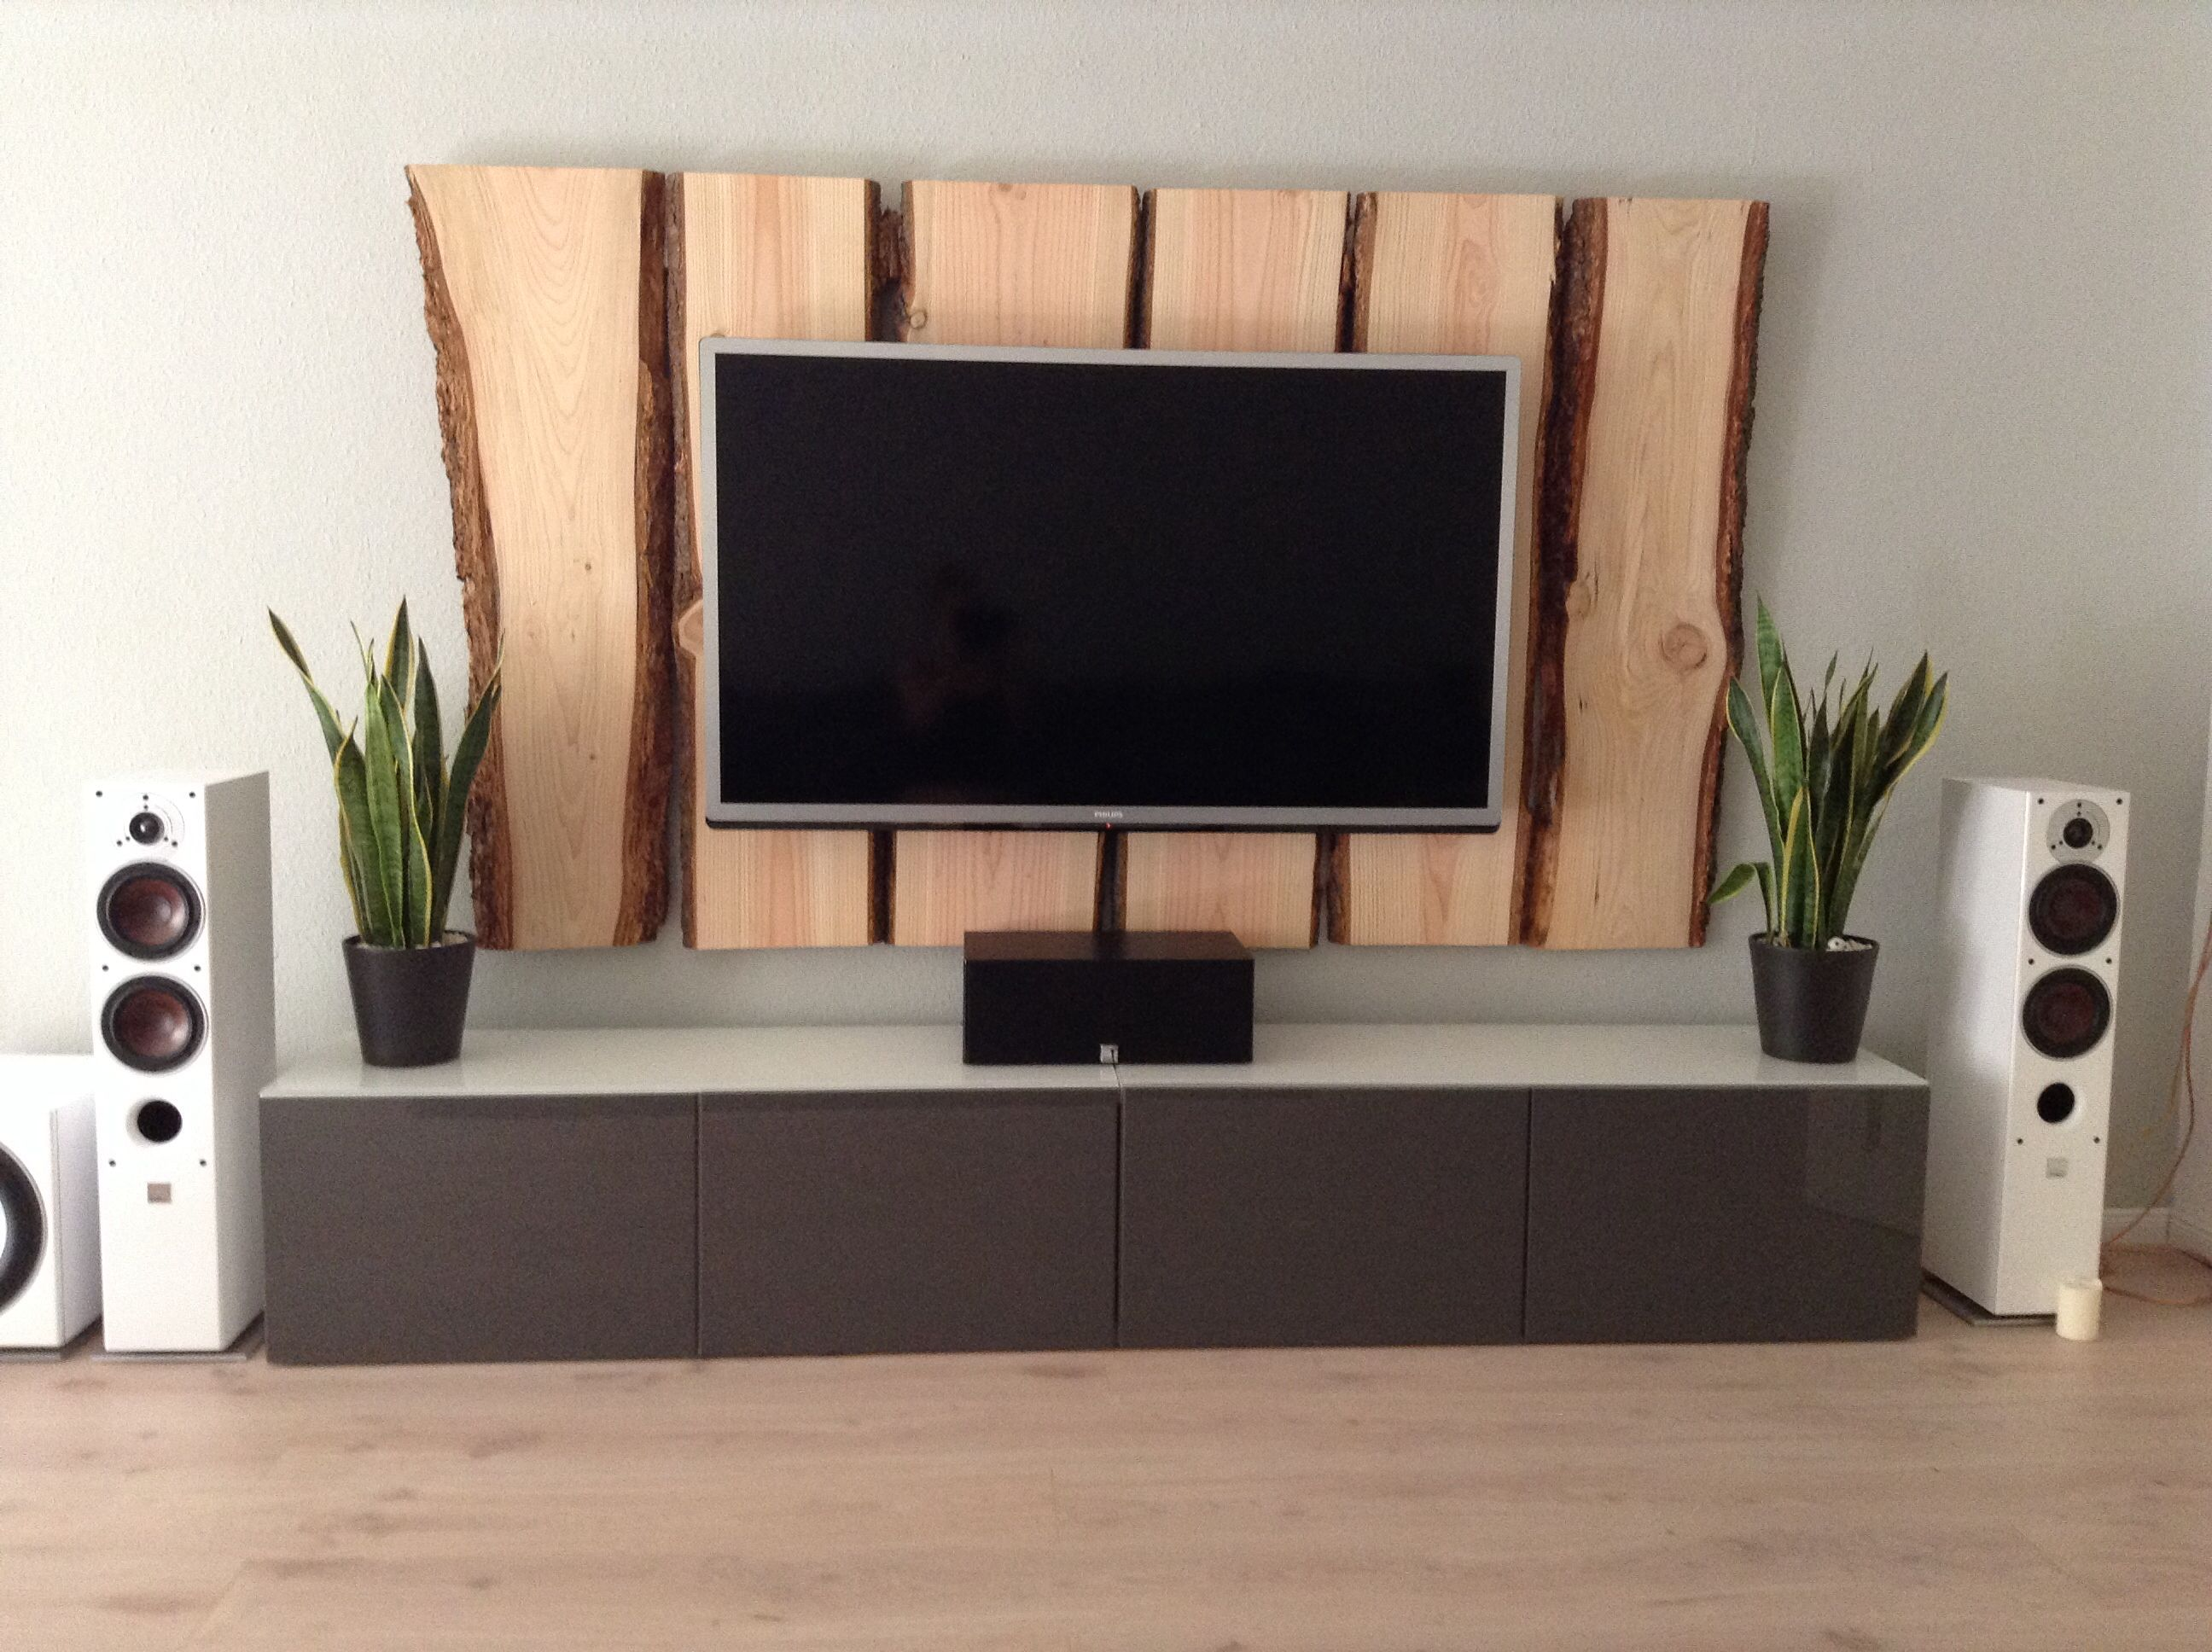 Holz Dekoration Wand Holz Tv Wand Tv Wall Wood Deko Und So Pinterest Tv